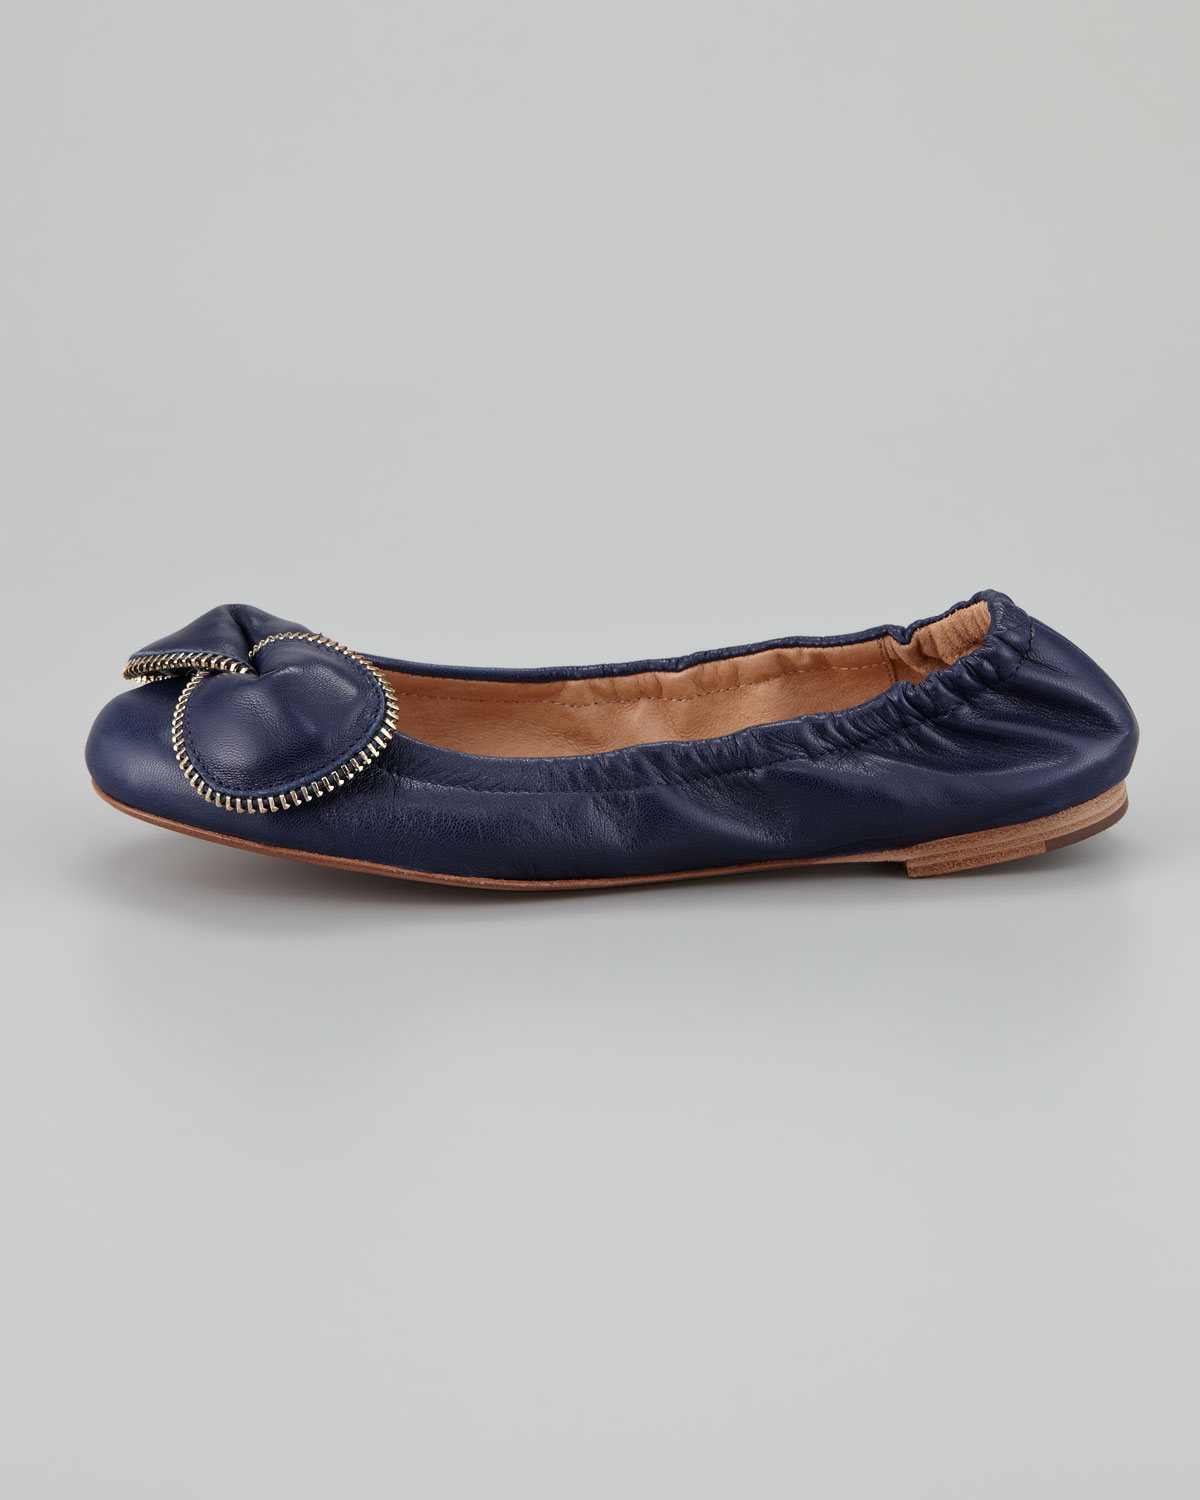 731ed969ef6e See By Chloé Zipperbow Scrunch Ballerina Flat Navy in Blue - Lyst